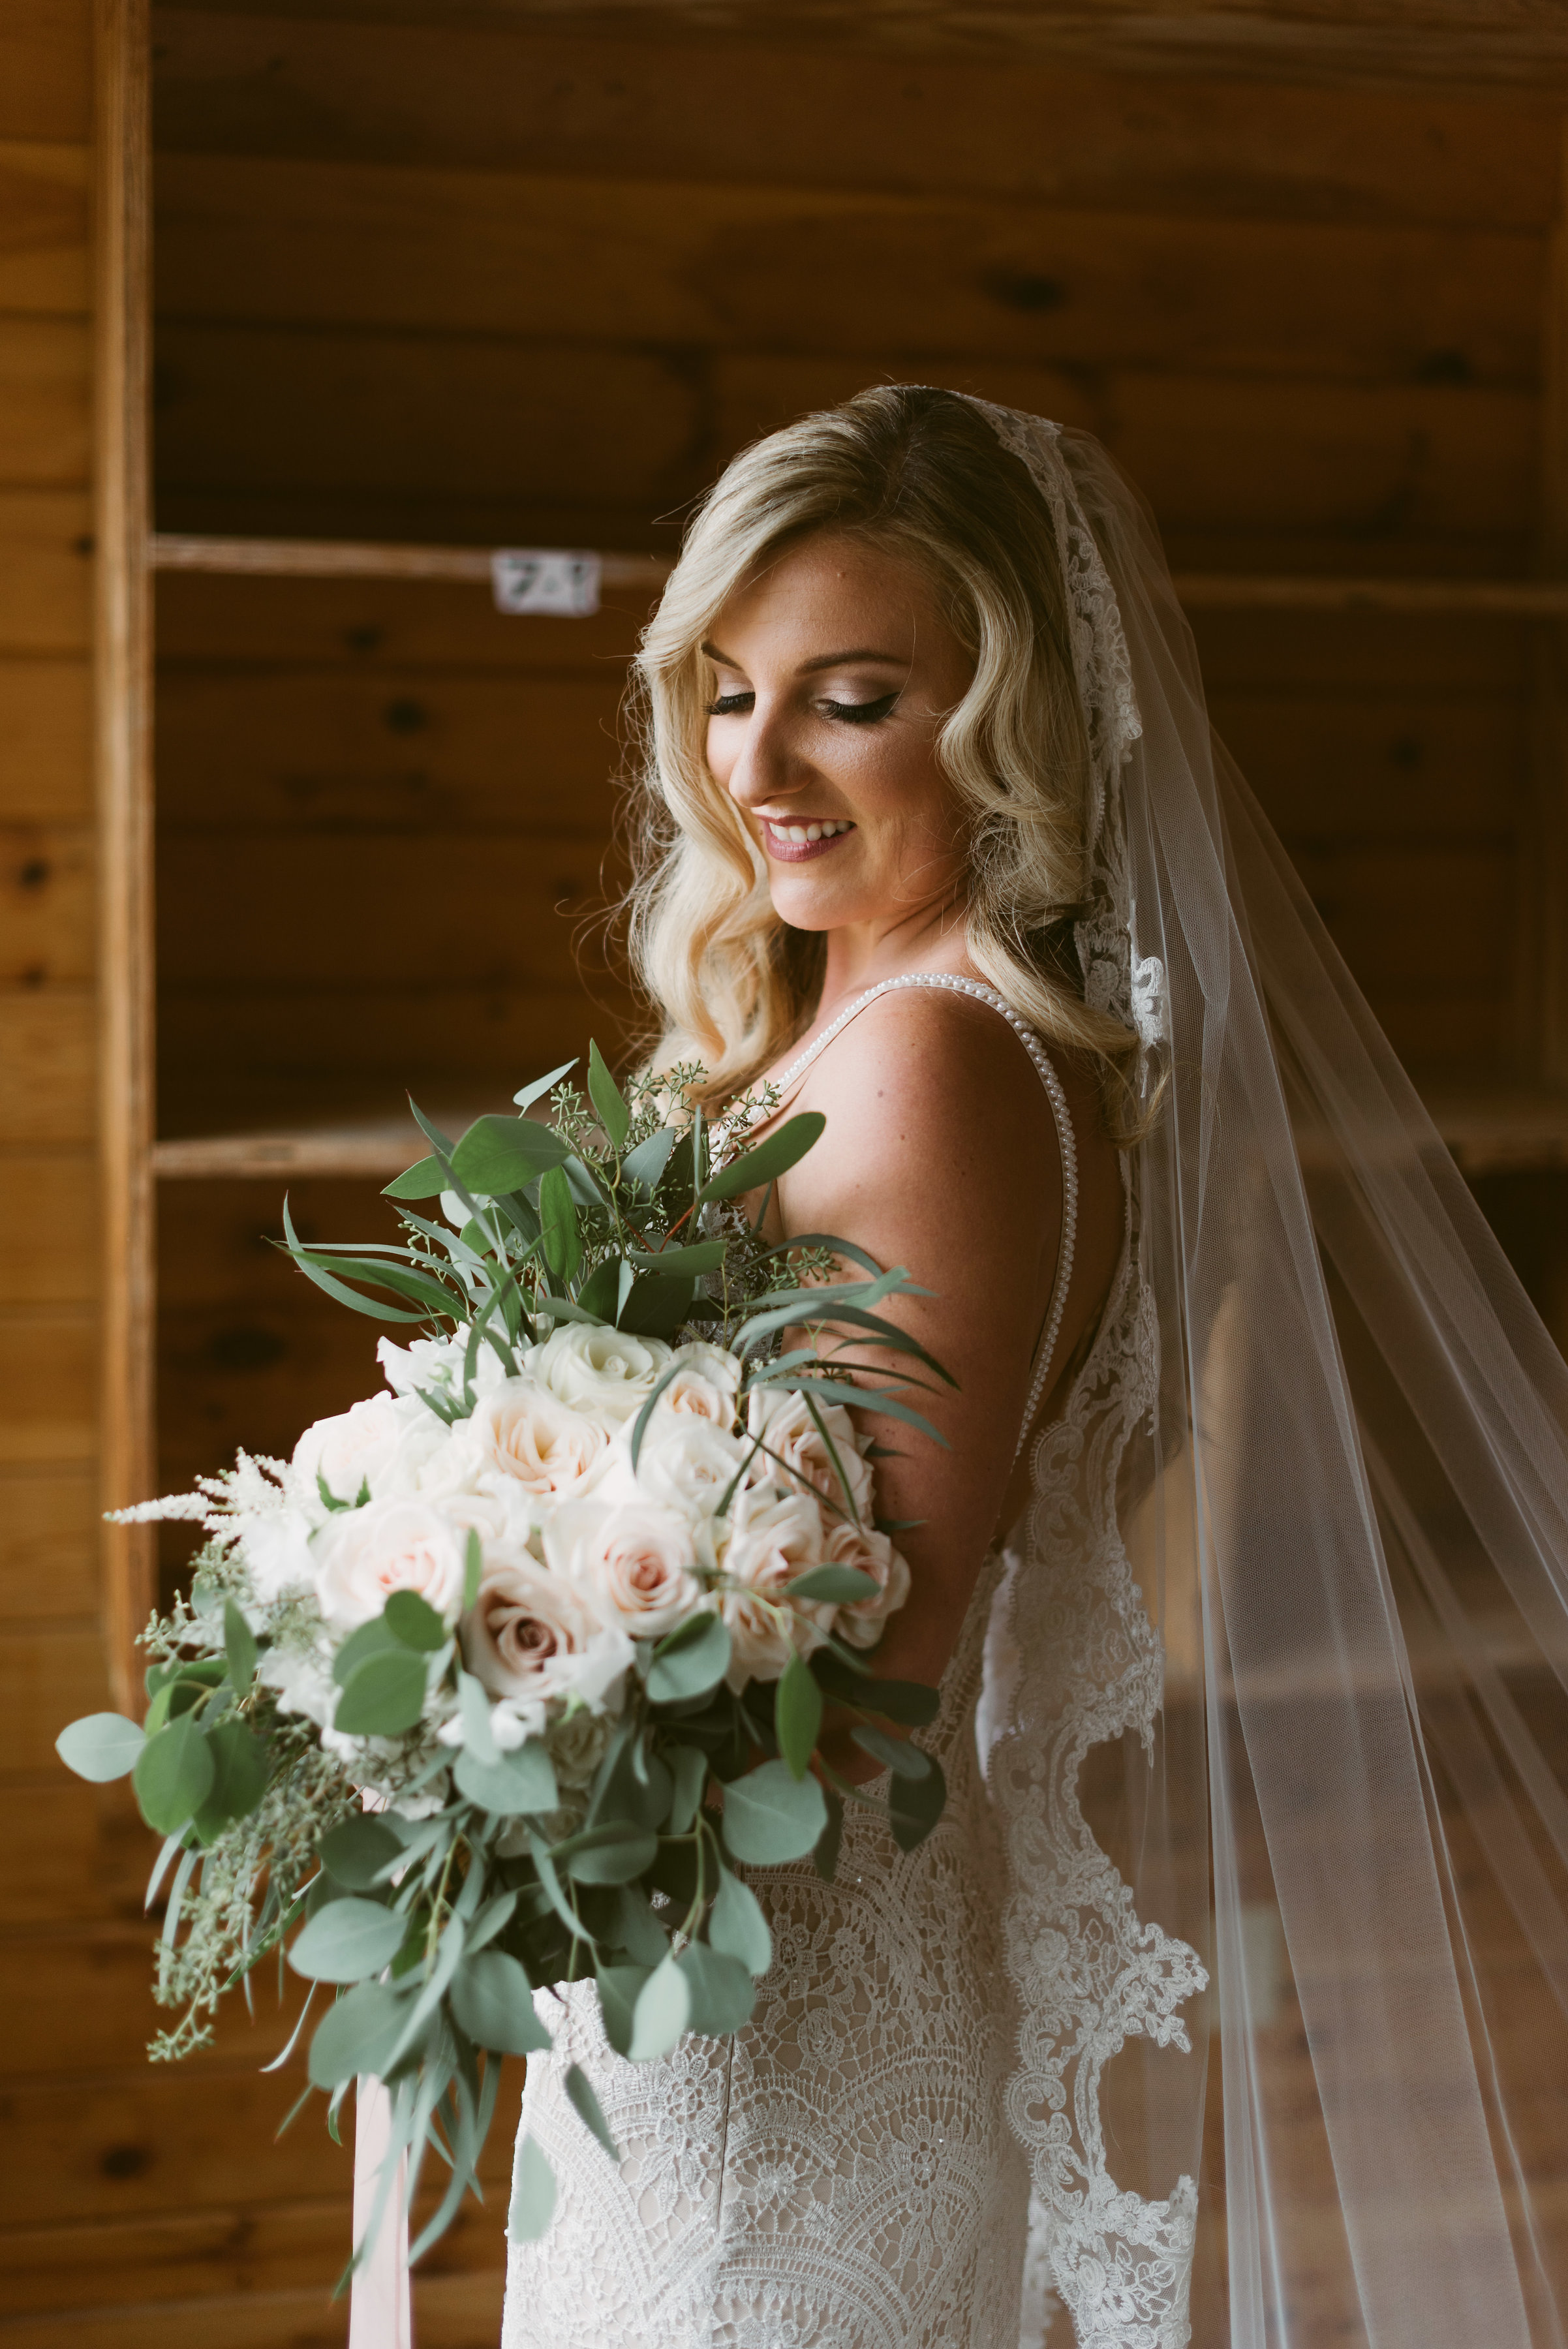 makeup by leah Francesca / hair by Chelsea goodier / photography Mountainaire gatherings / bride Courtney rauch